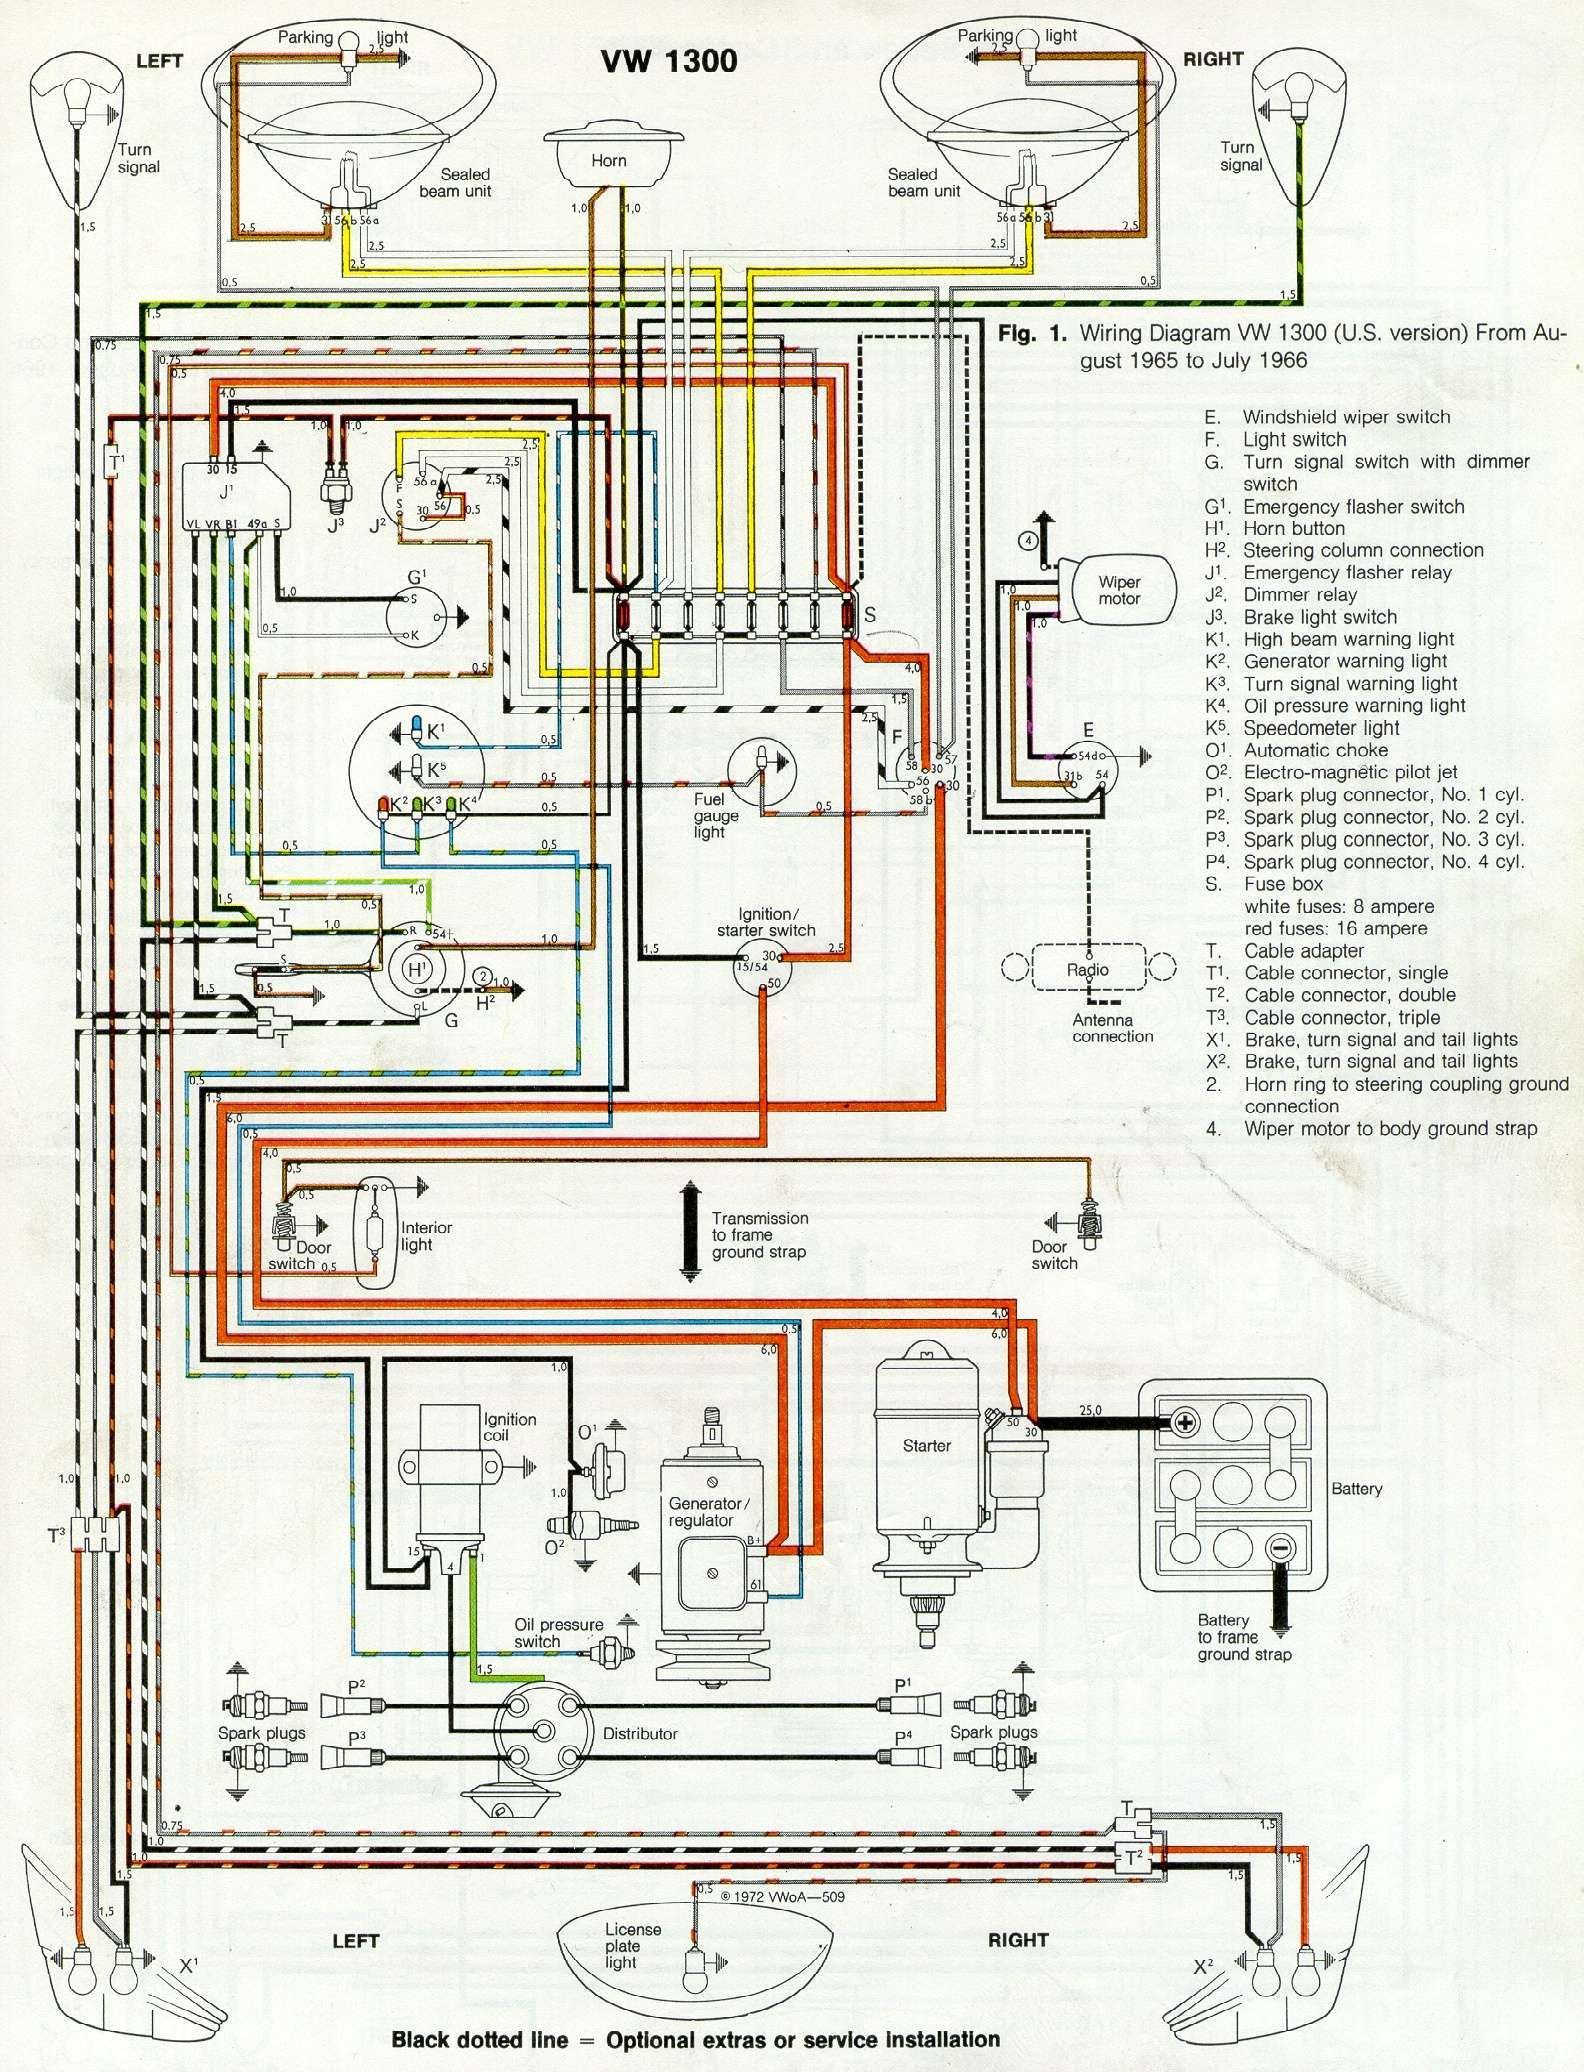 Thesamba Com Type 1 Wiring Diagrams With 1969 Vw Beetle Diagram Vw Kevers Kever Kevers